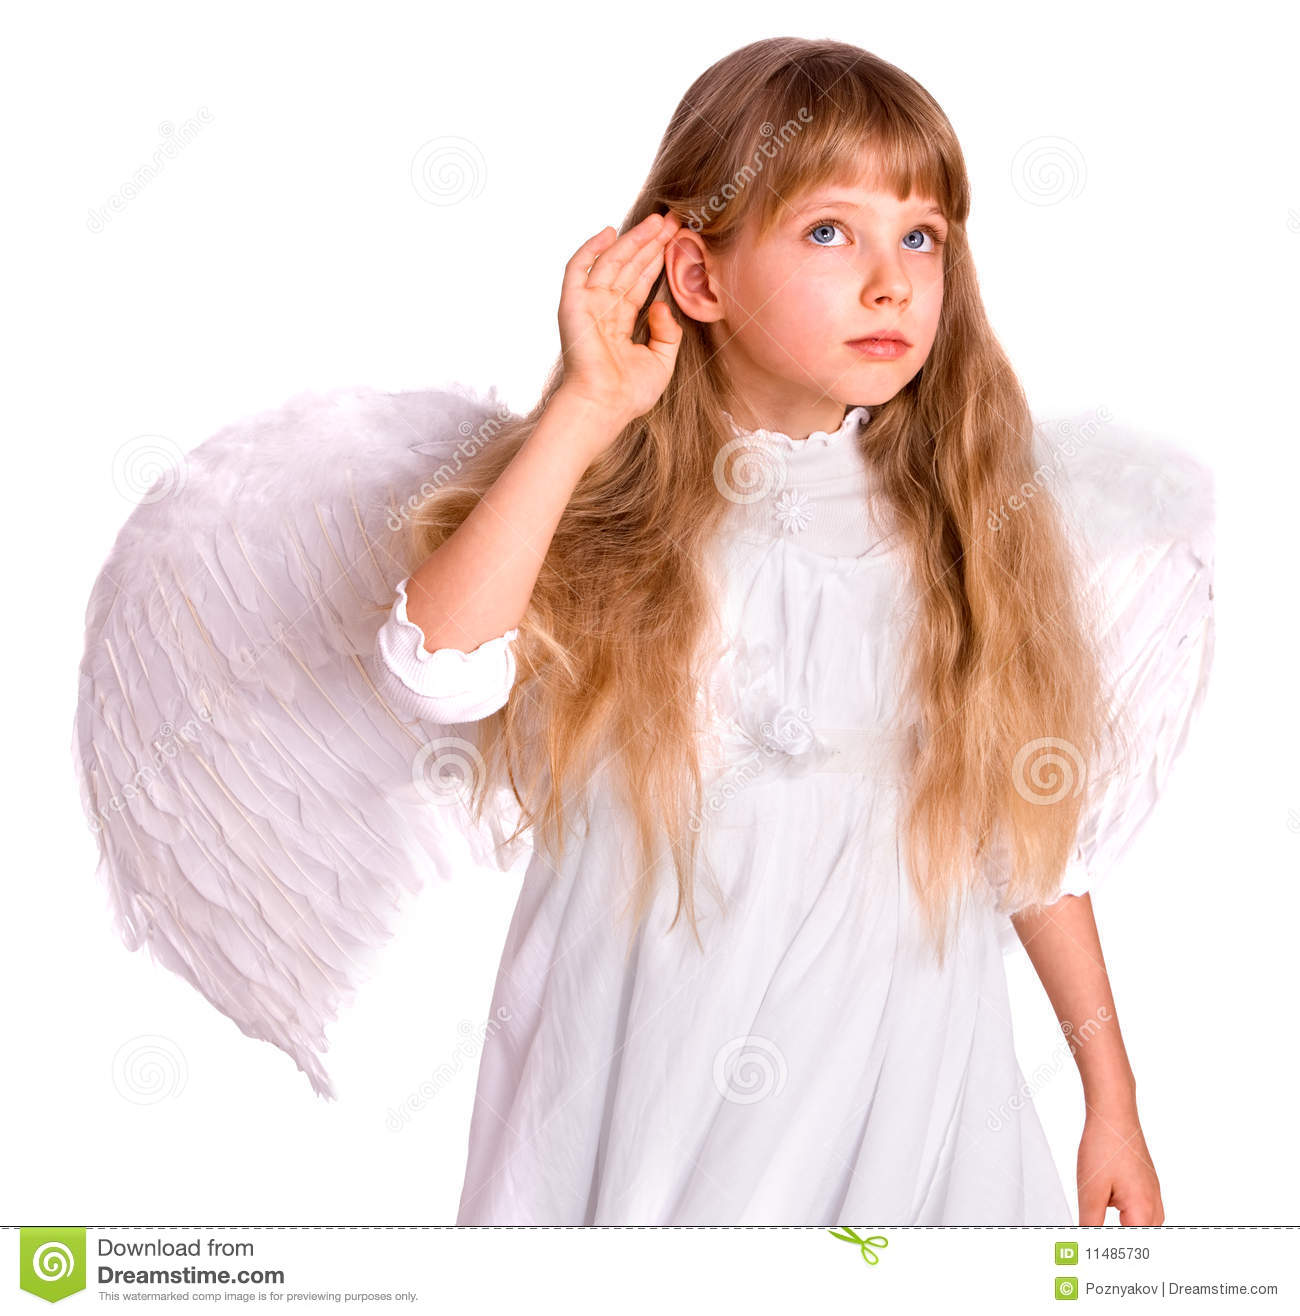 Girl child in angel costume listen, hand near ear.